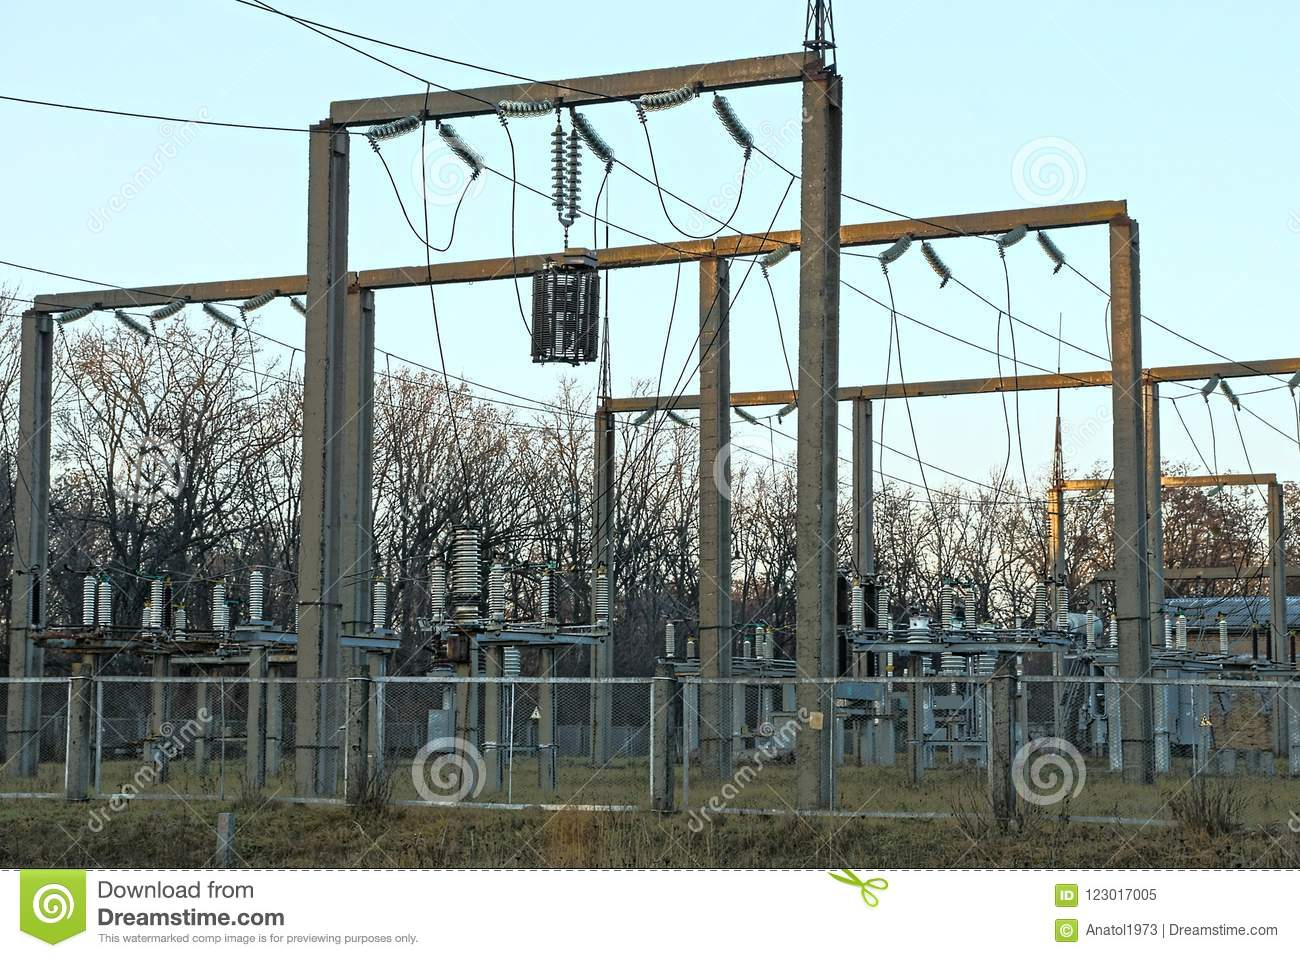 part power plant poles transformers wires behind fence station iron street 123017005 part of a power plant with poles, transformers and wires behind a